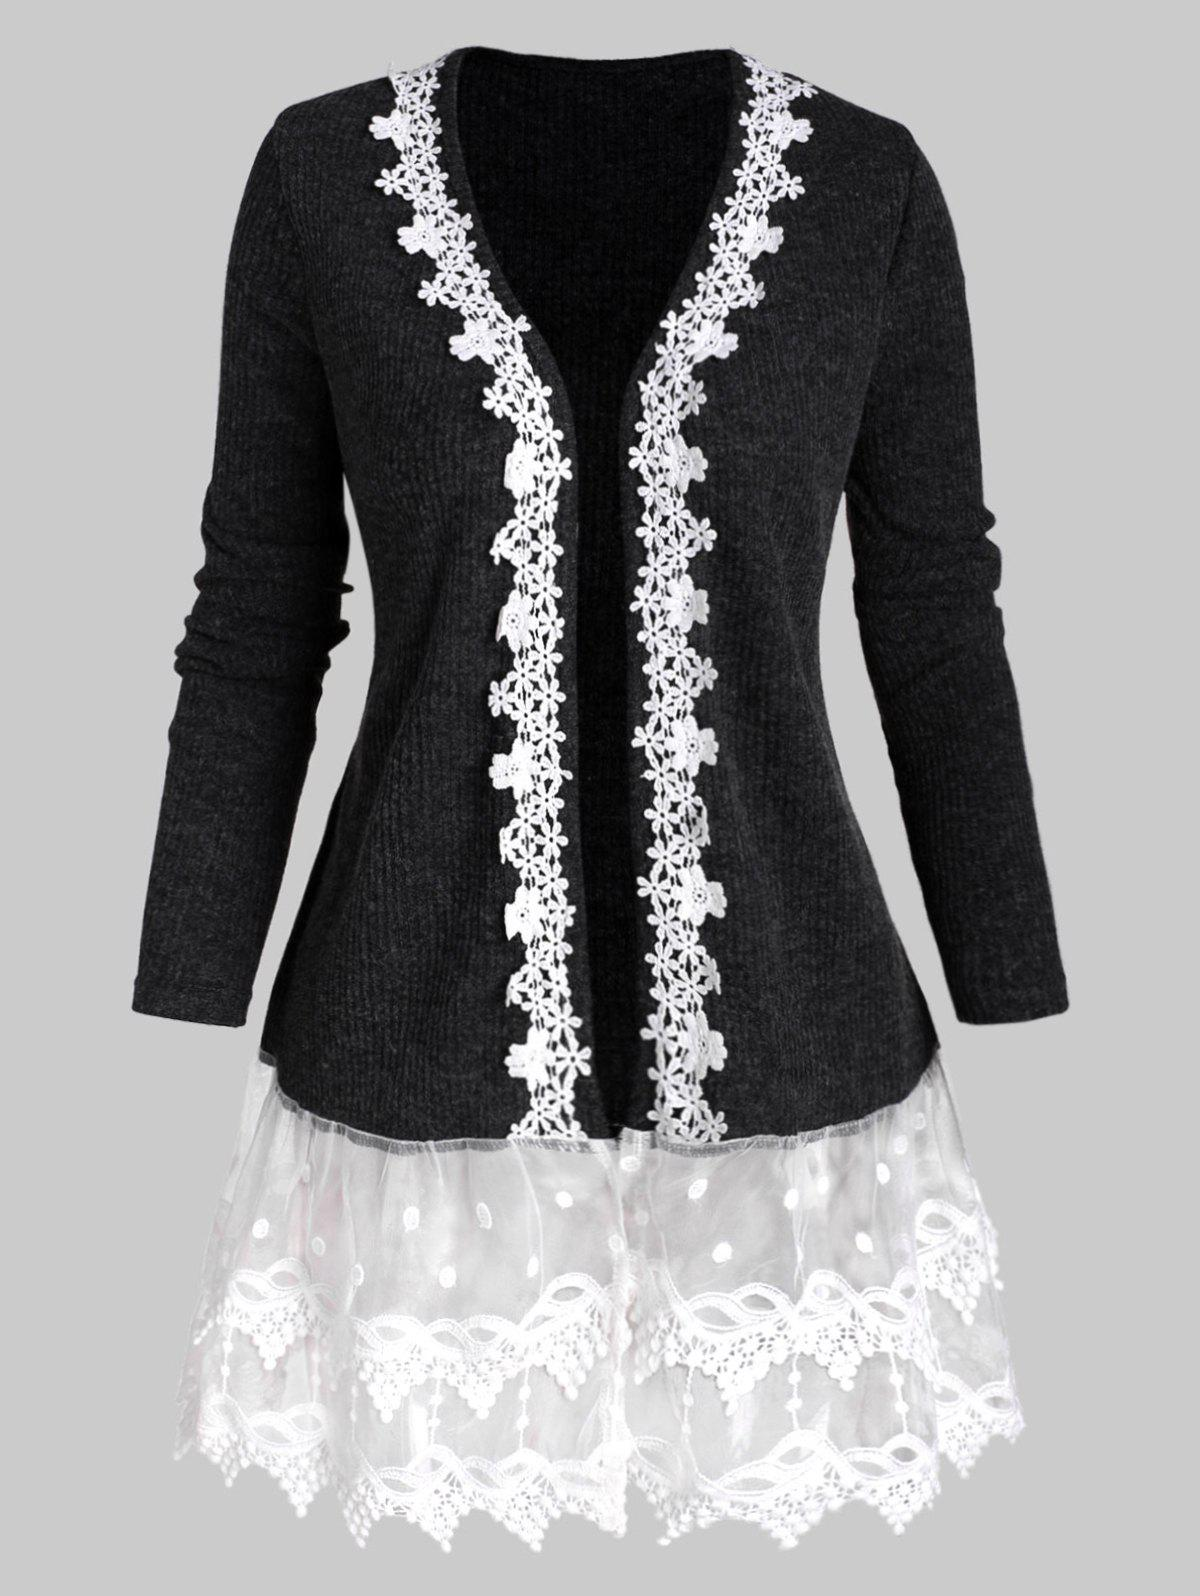 Ribbed Lace Mesh Panel Open Front Plus Size Cardigan - GRAY 5X